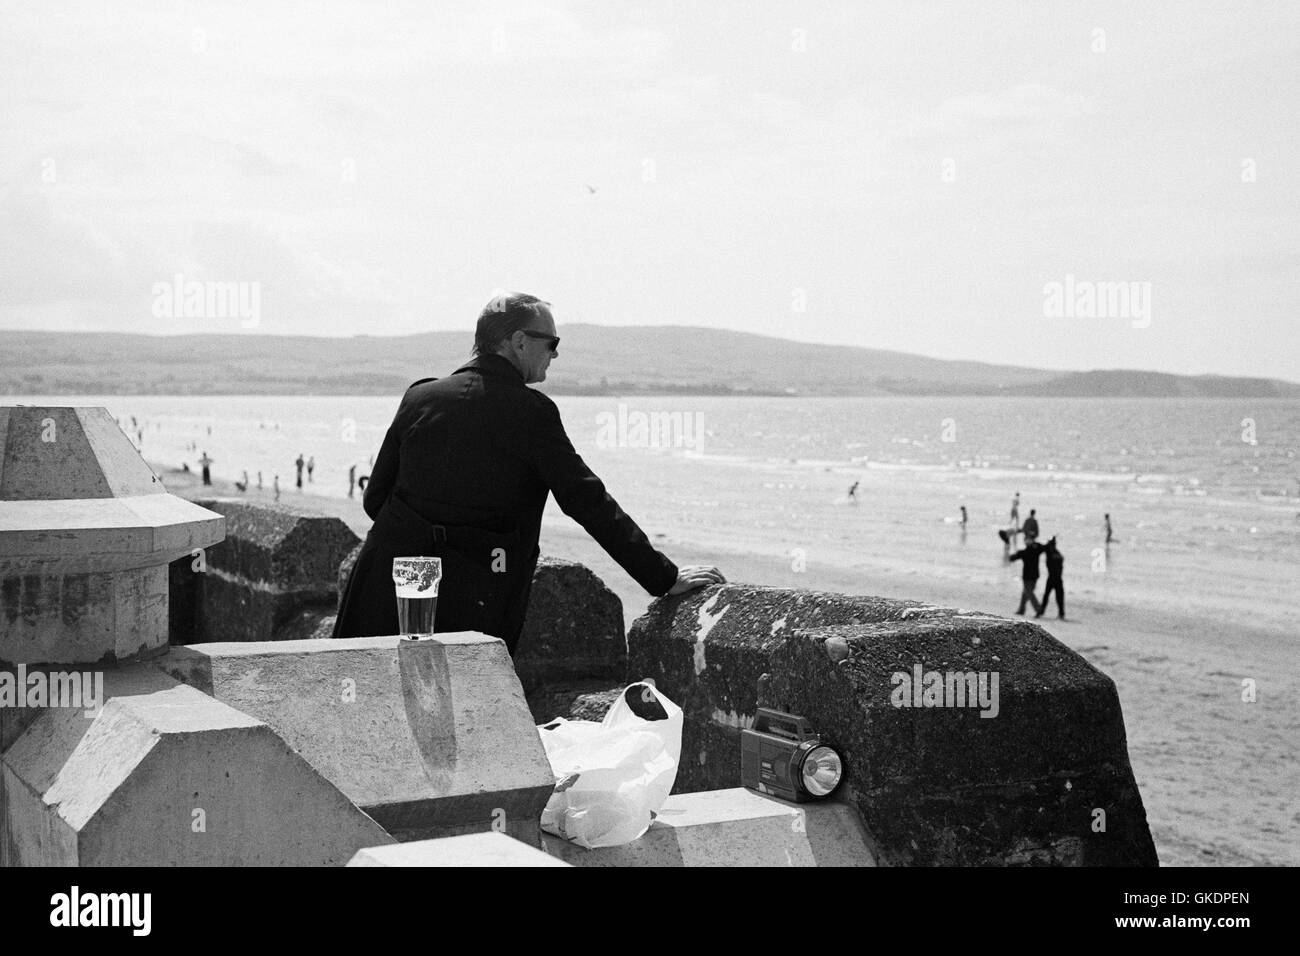 A man looks out to Sea. Ayr, 1989 appros - Stock Image